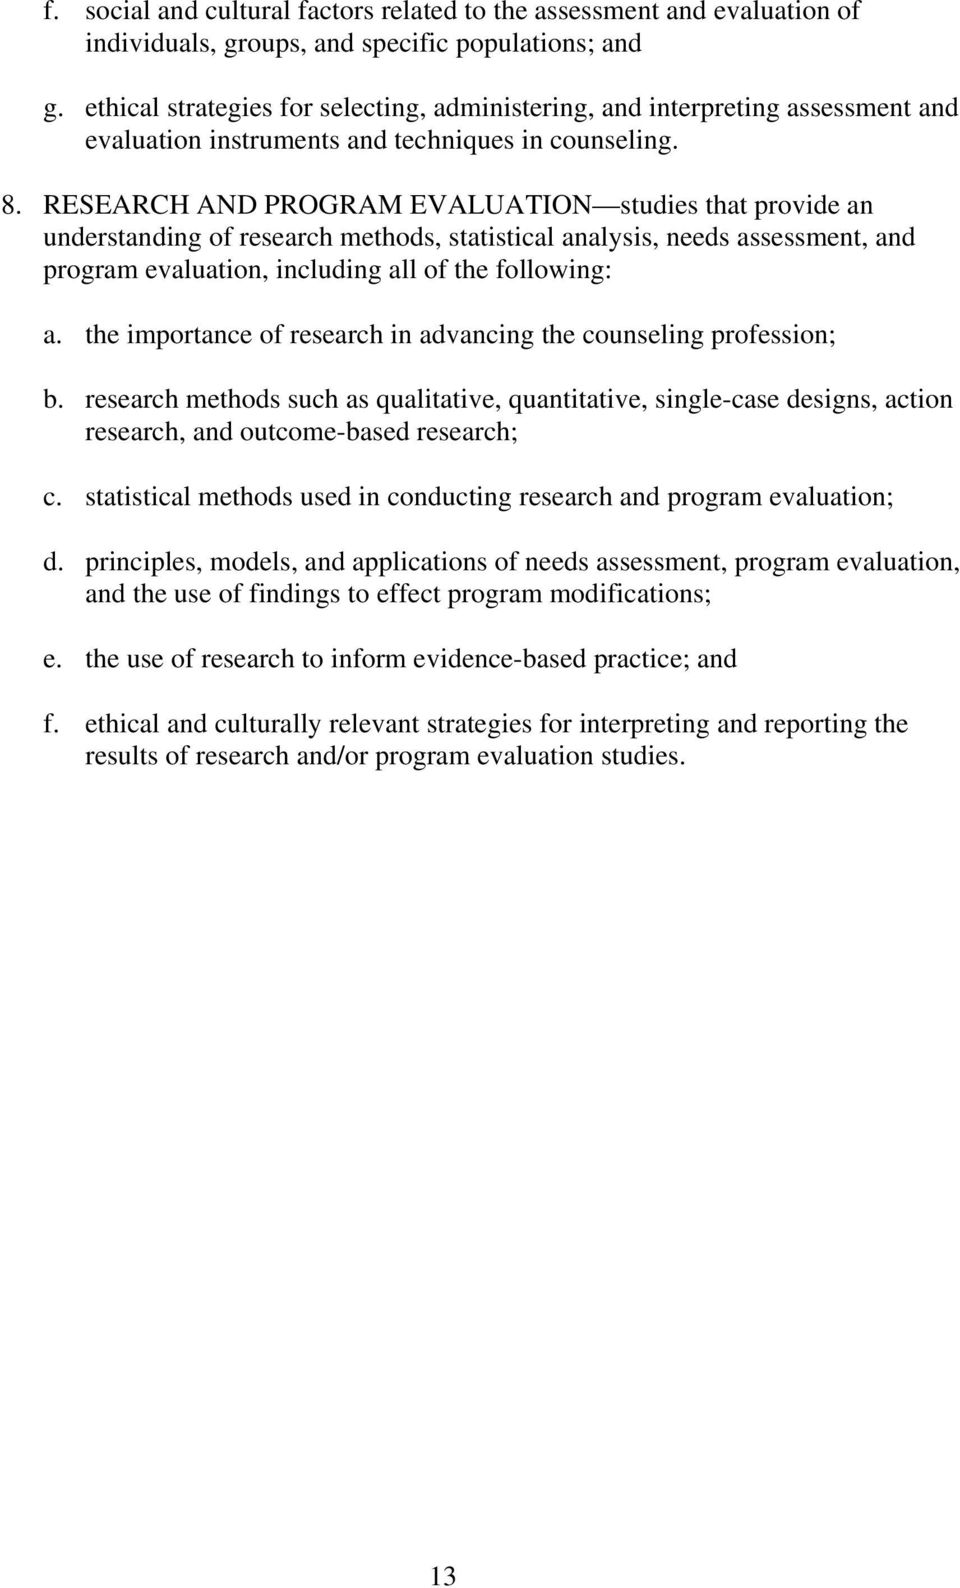 RESEARCH AND PROGRAM EVALUATION studies that provide an understanding of research methods, statistical analysis, needs assessment, and program evaluation, including all of the following: a.